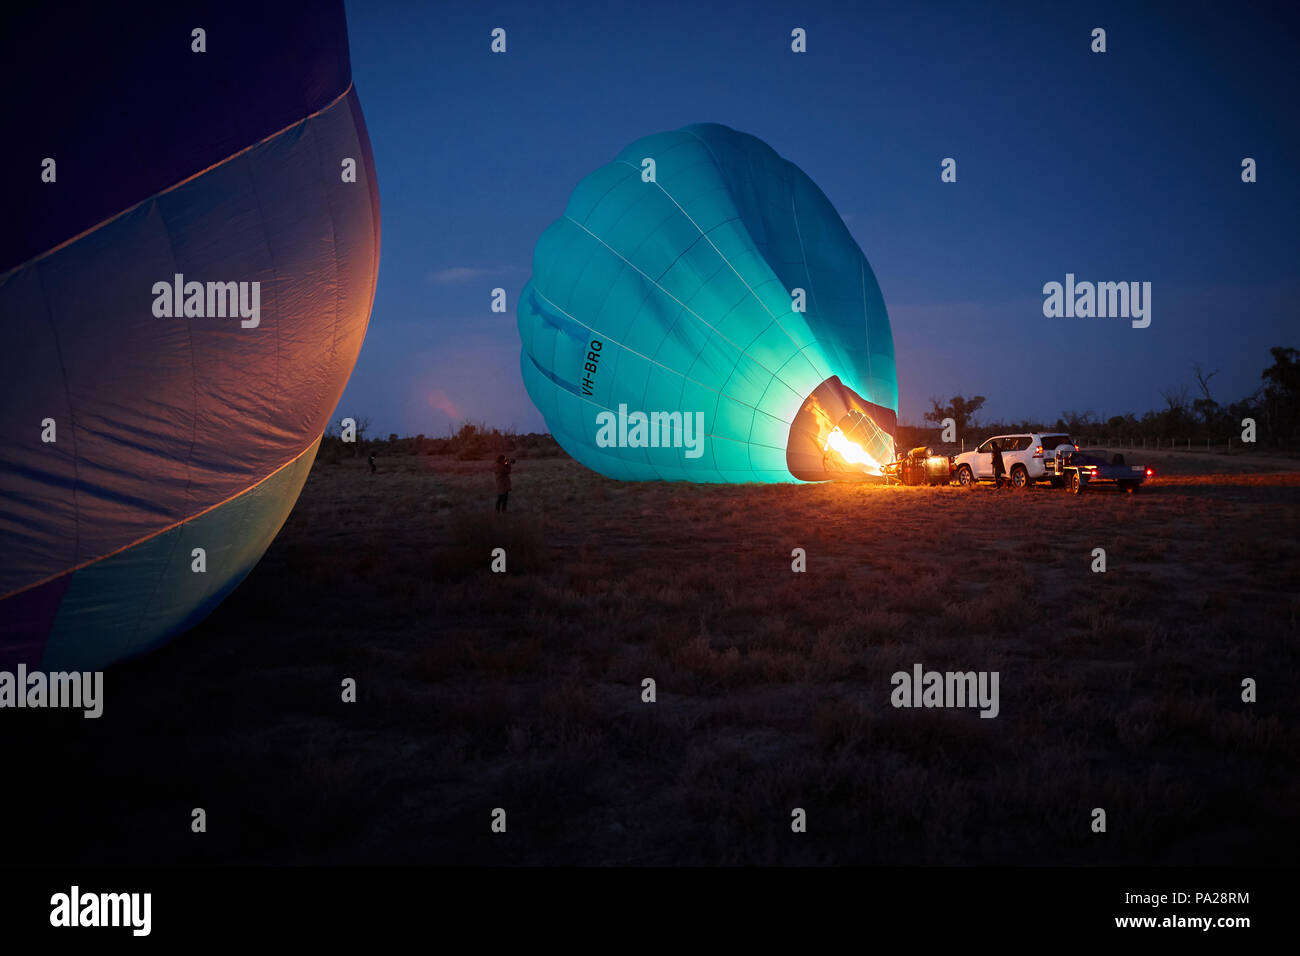 19th July 2018, two hot air balloons attempting a long distance flight, launch from a field near Merbein in North West Victoria, Australia. - Stock Image